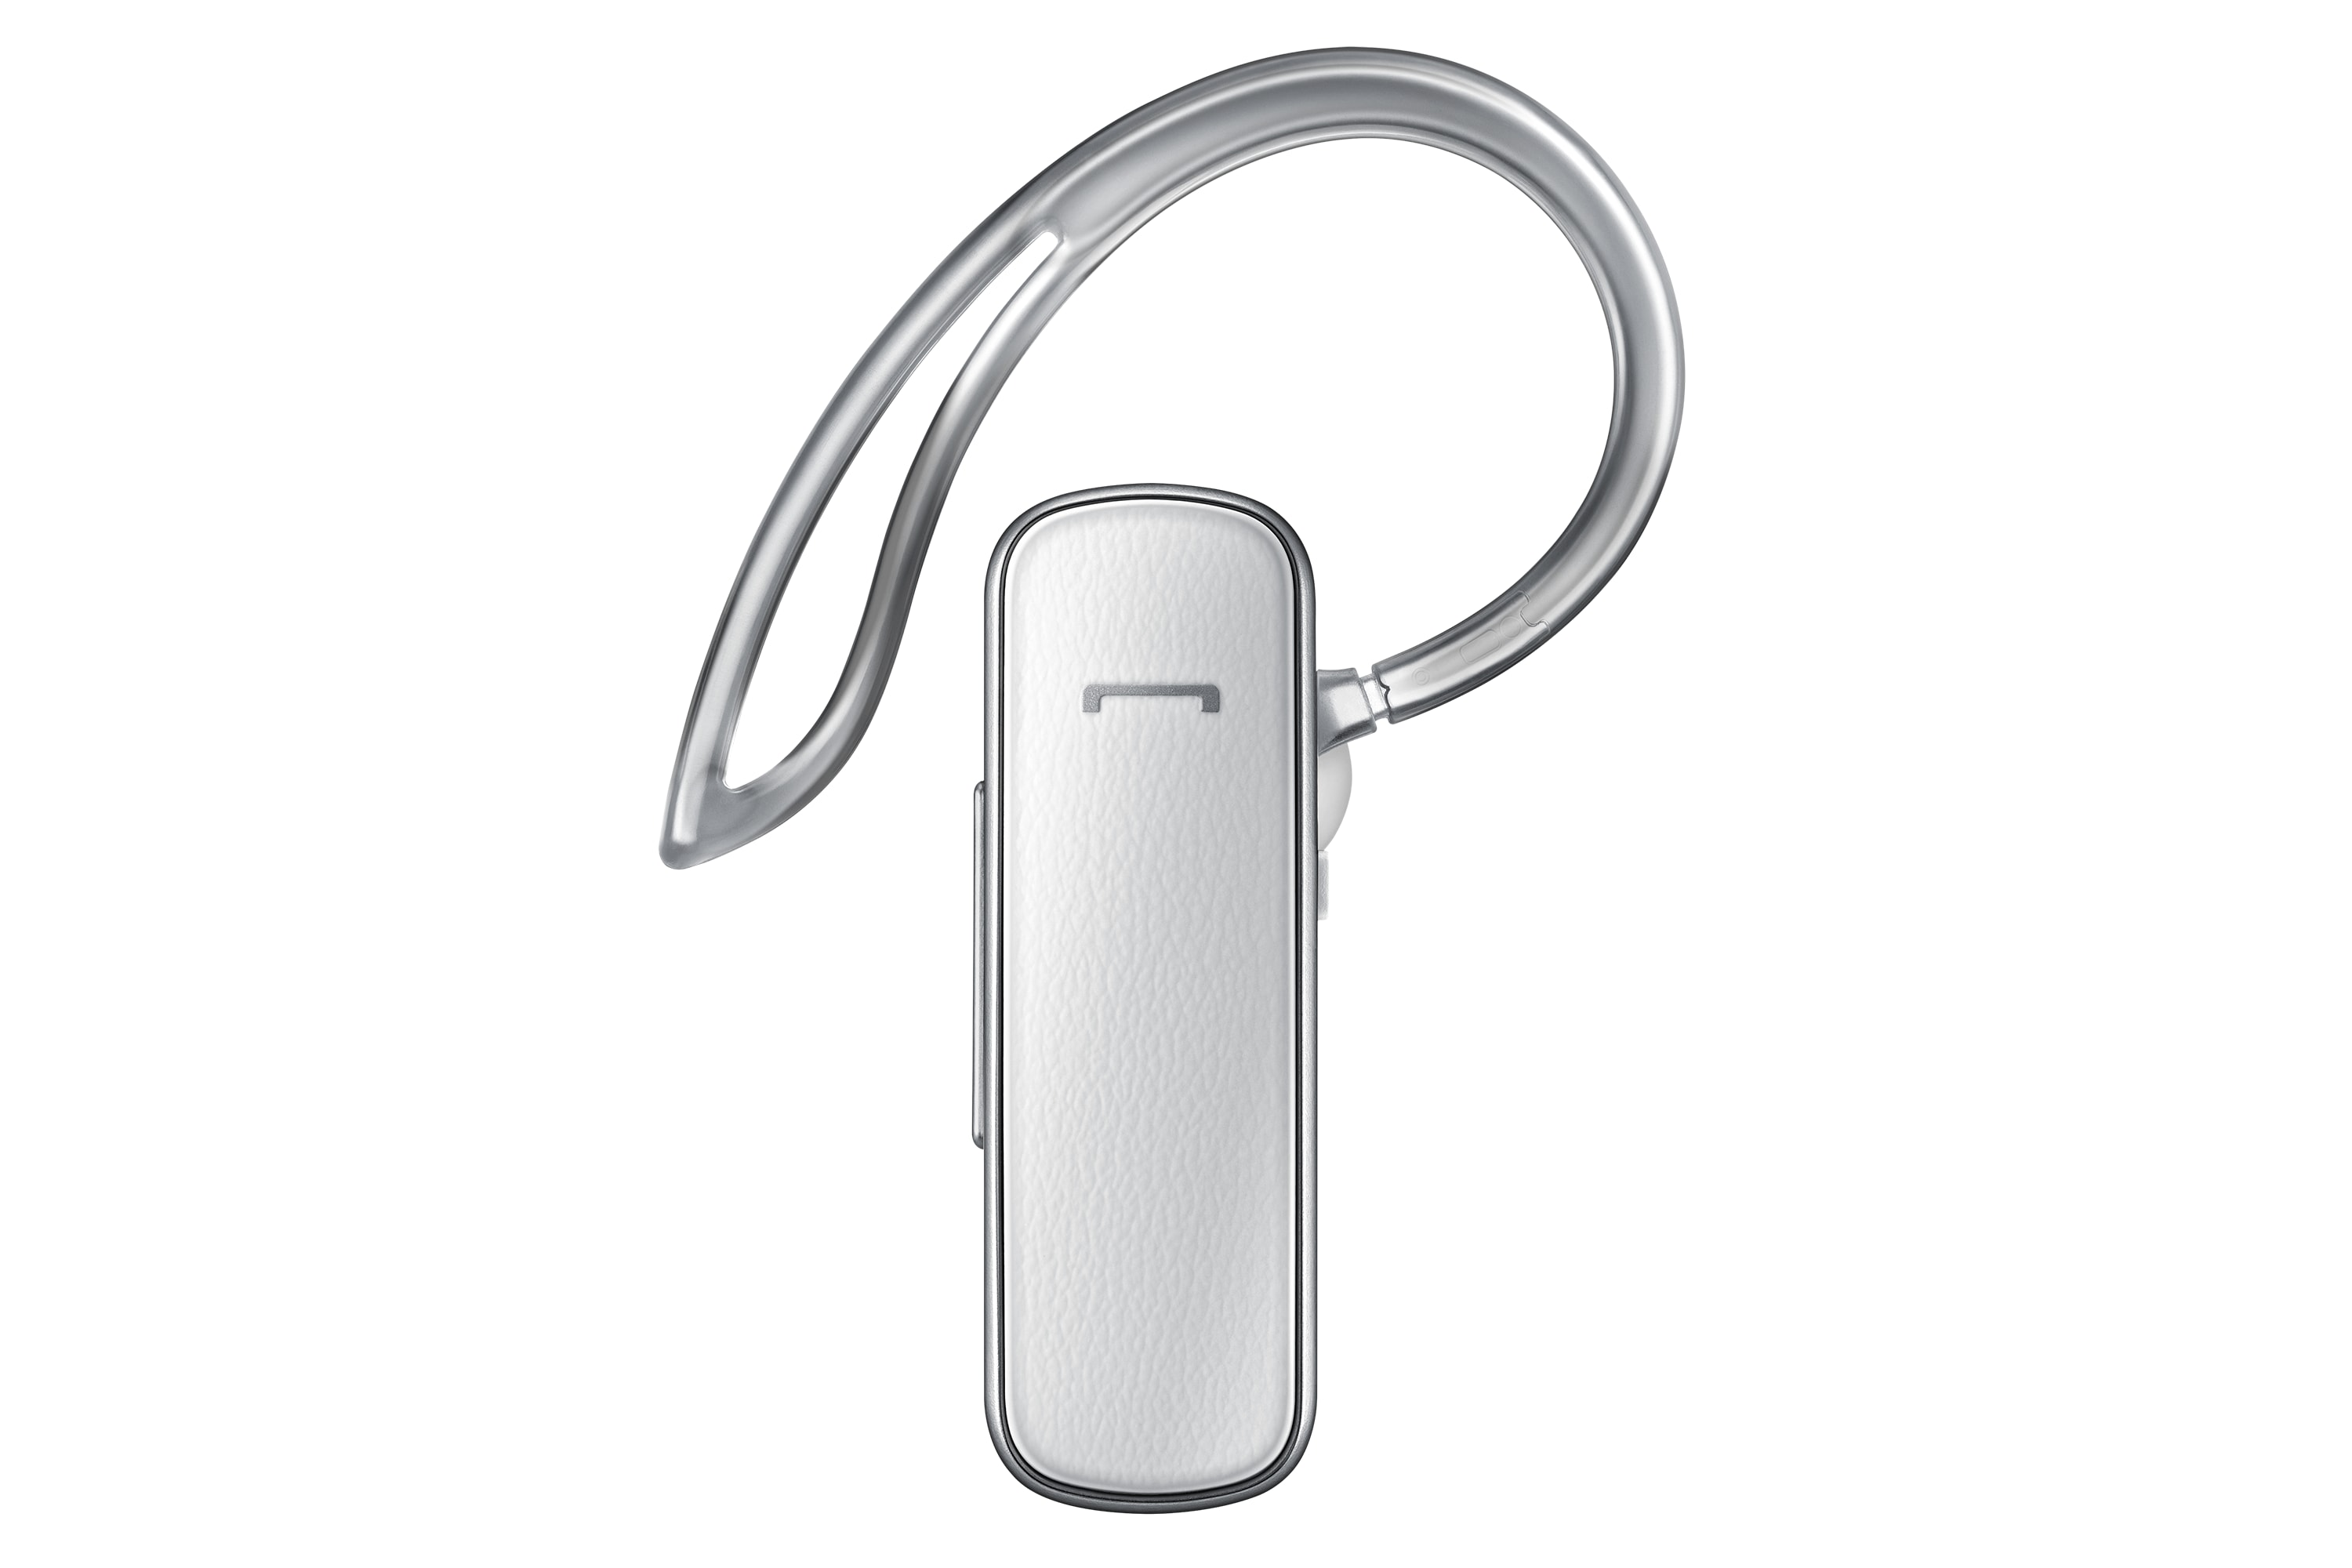 Bluetooth® Headset EO-MG900